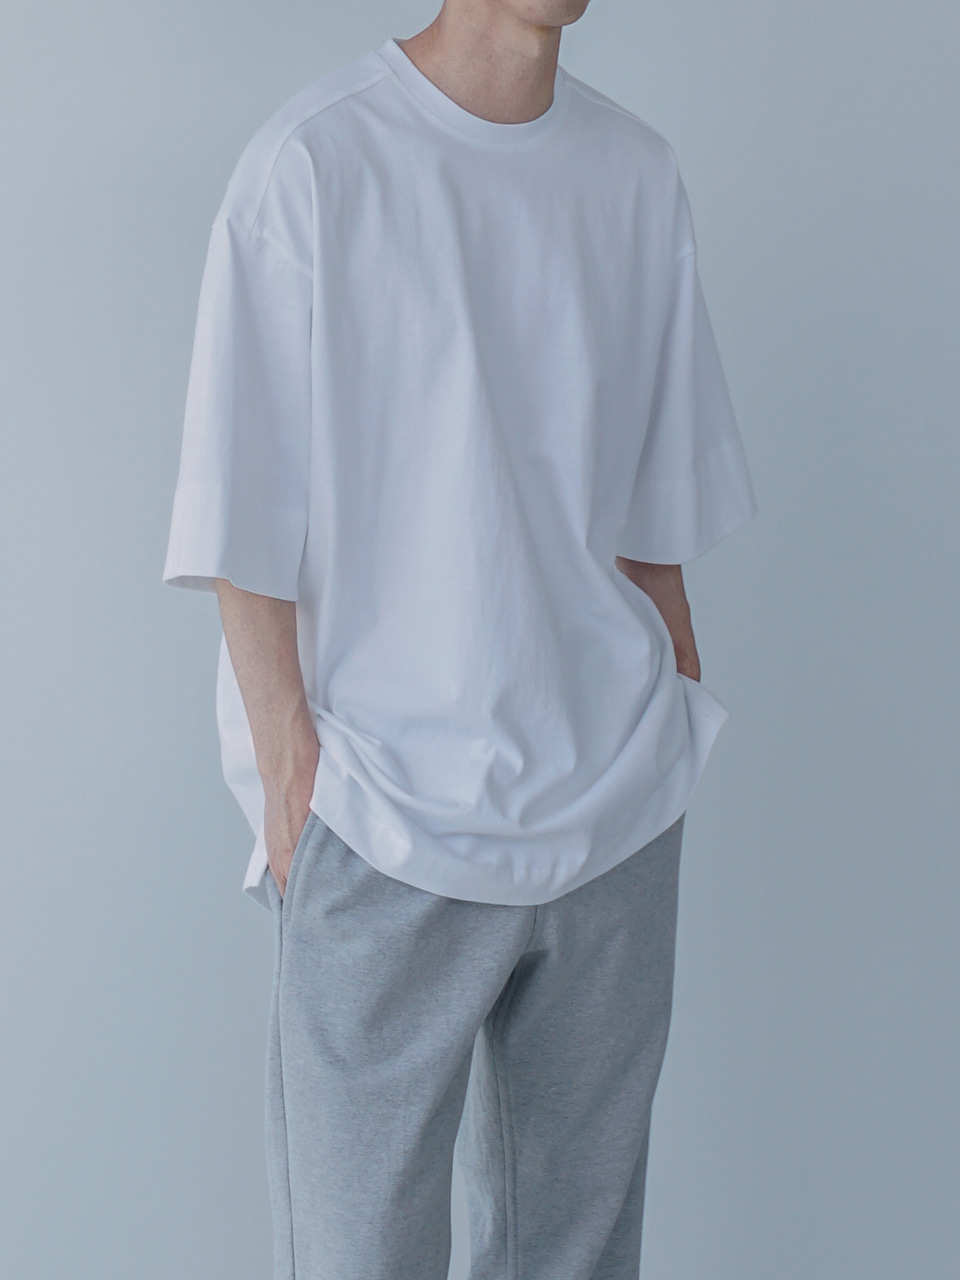 Tale Oversized Half Tee (3color)